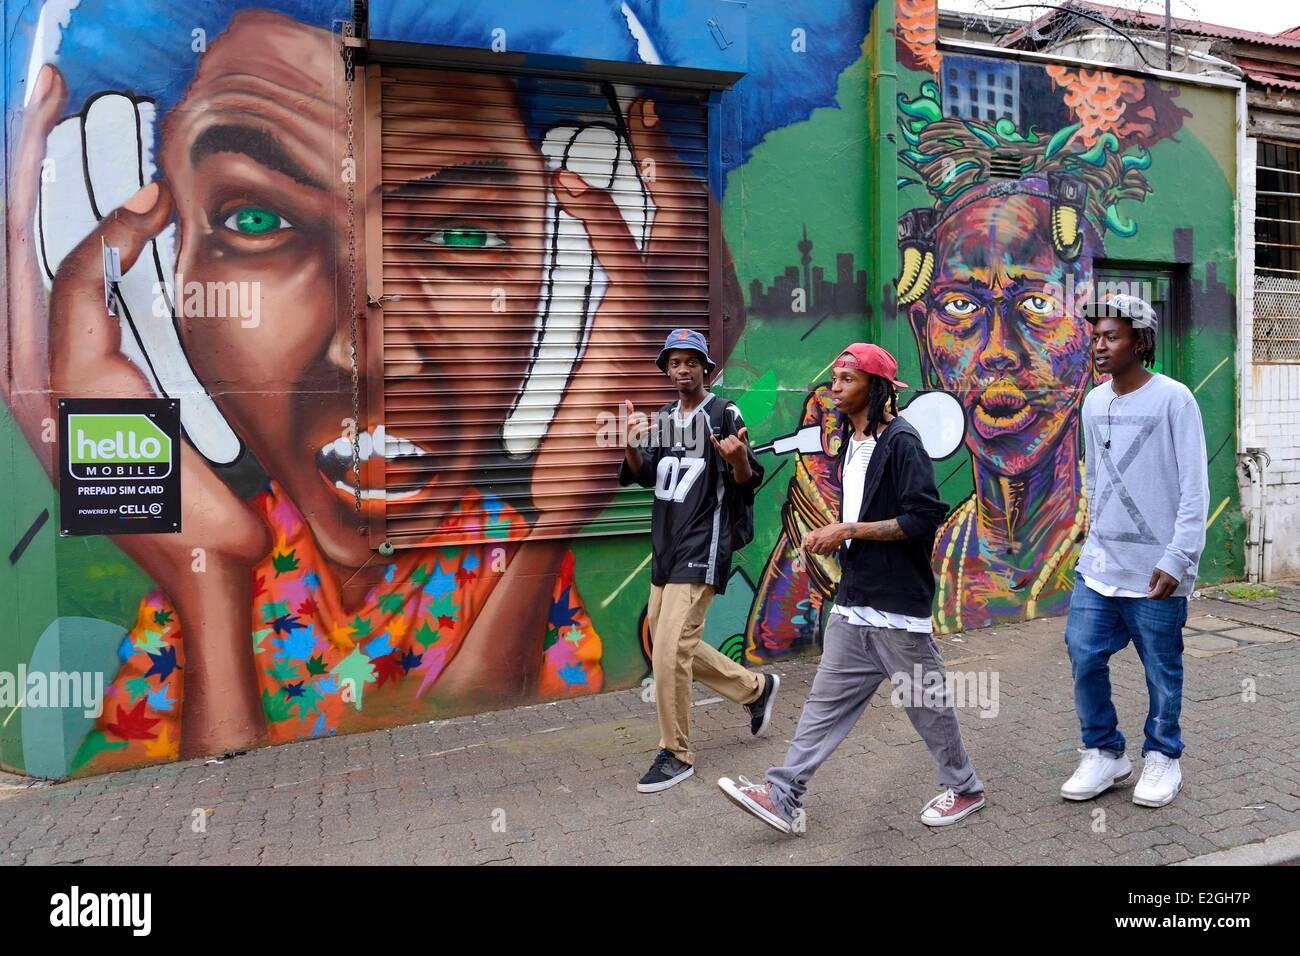 South Africa Gauteng province Johannesburg Braamfontein district group of youths in front of a mural in De Korte - Stock Image